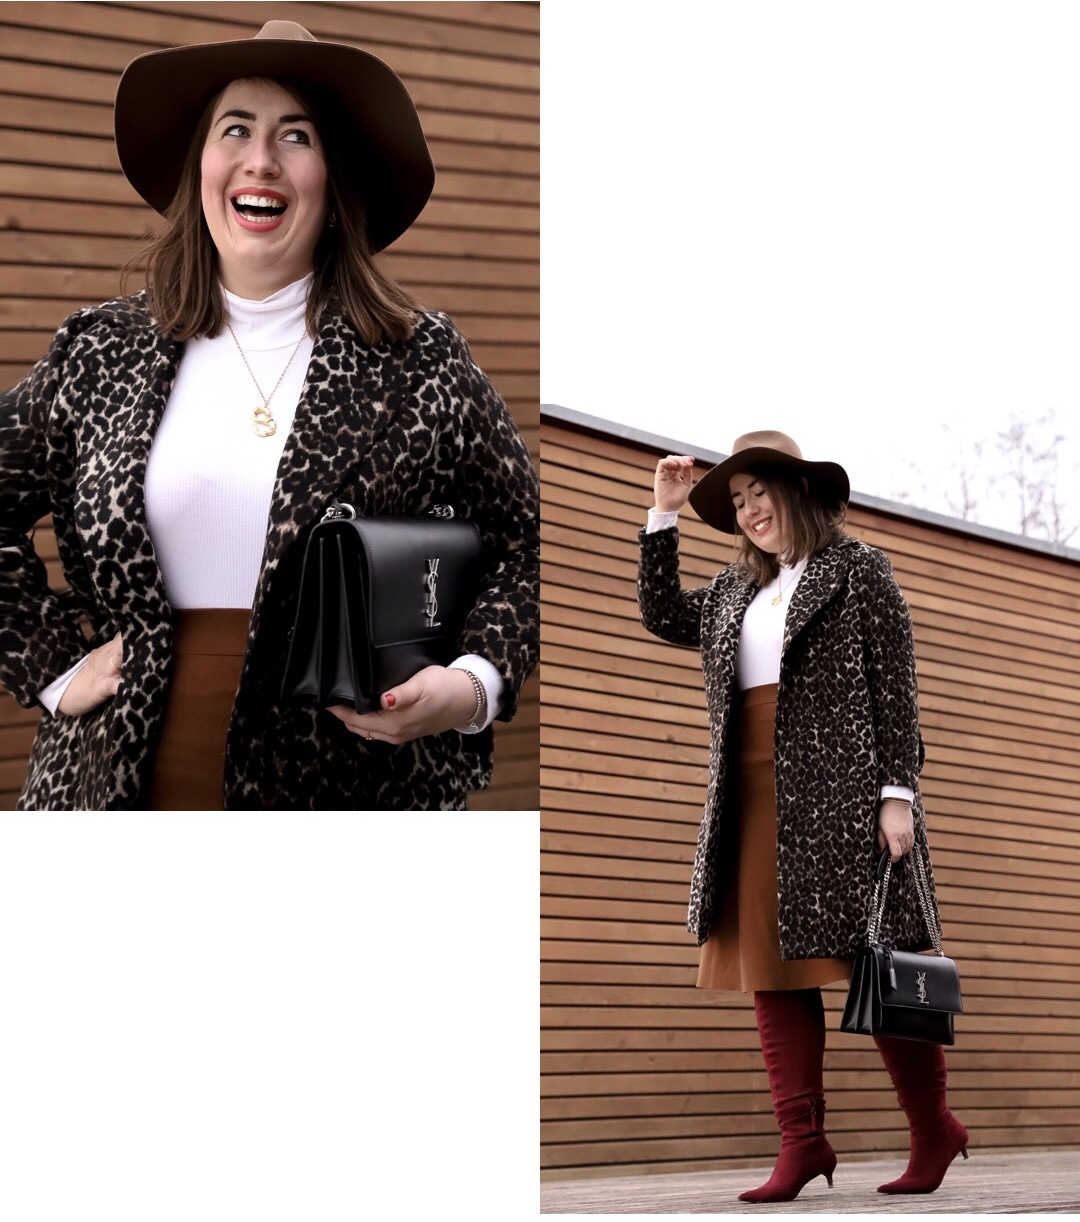 Outfit-Leomantel-Animalprint-Strickrock-YSL-Sunset-Fedora-Hut-Miss-Suzie-Loves-Susanne-Heidebach